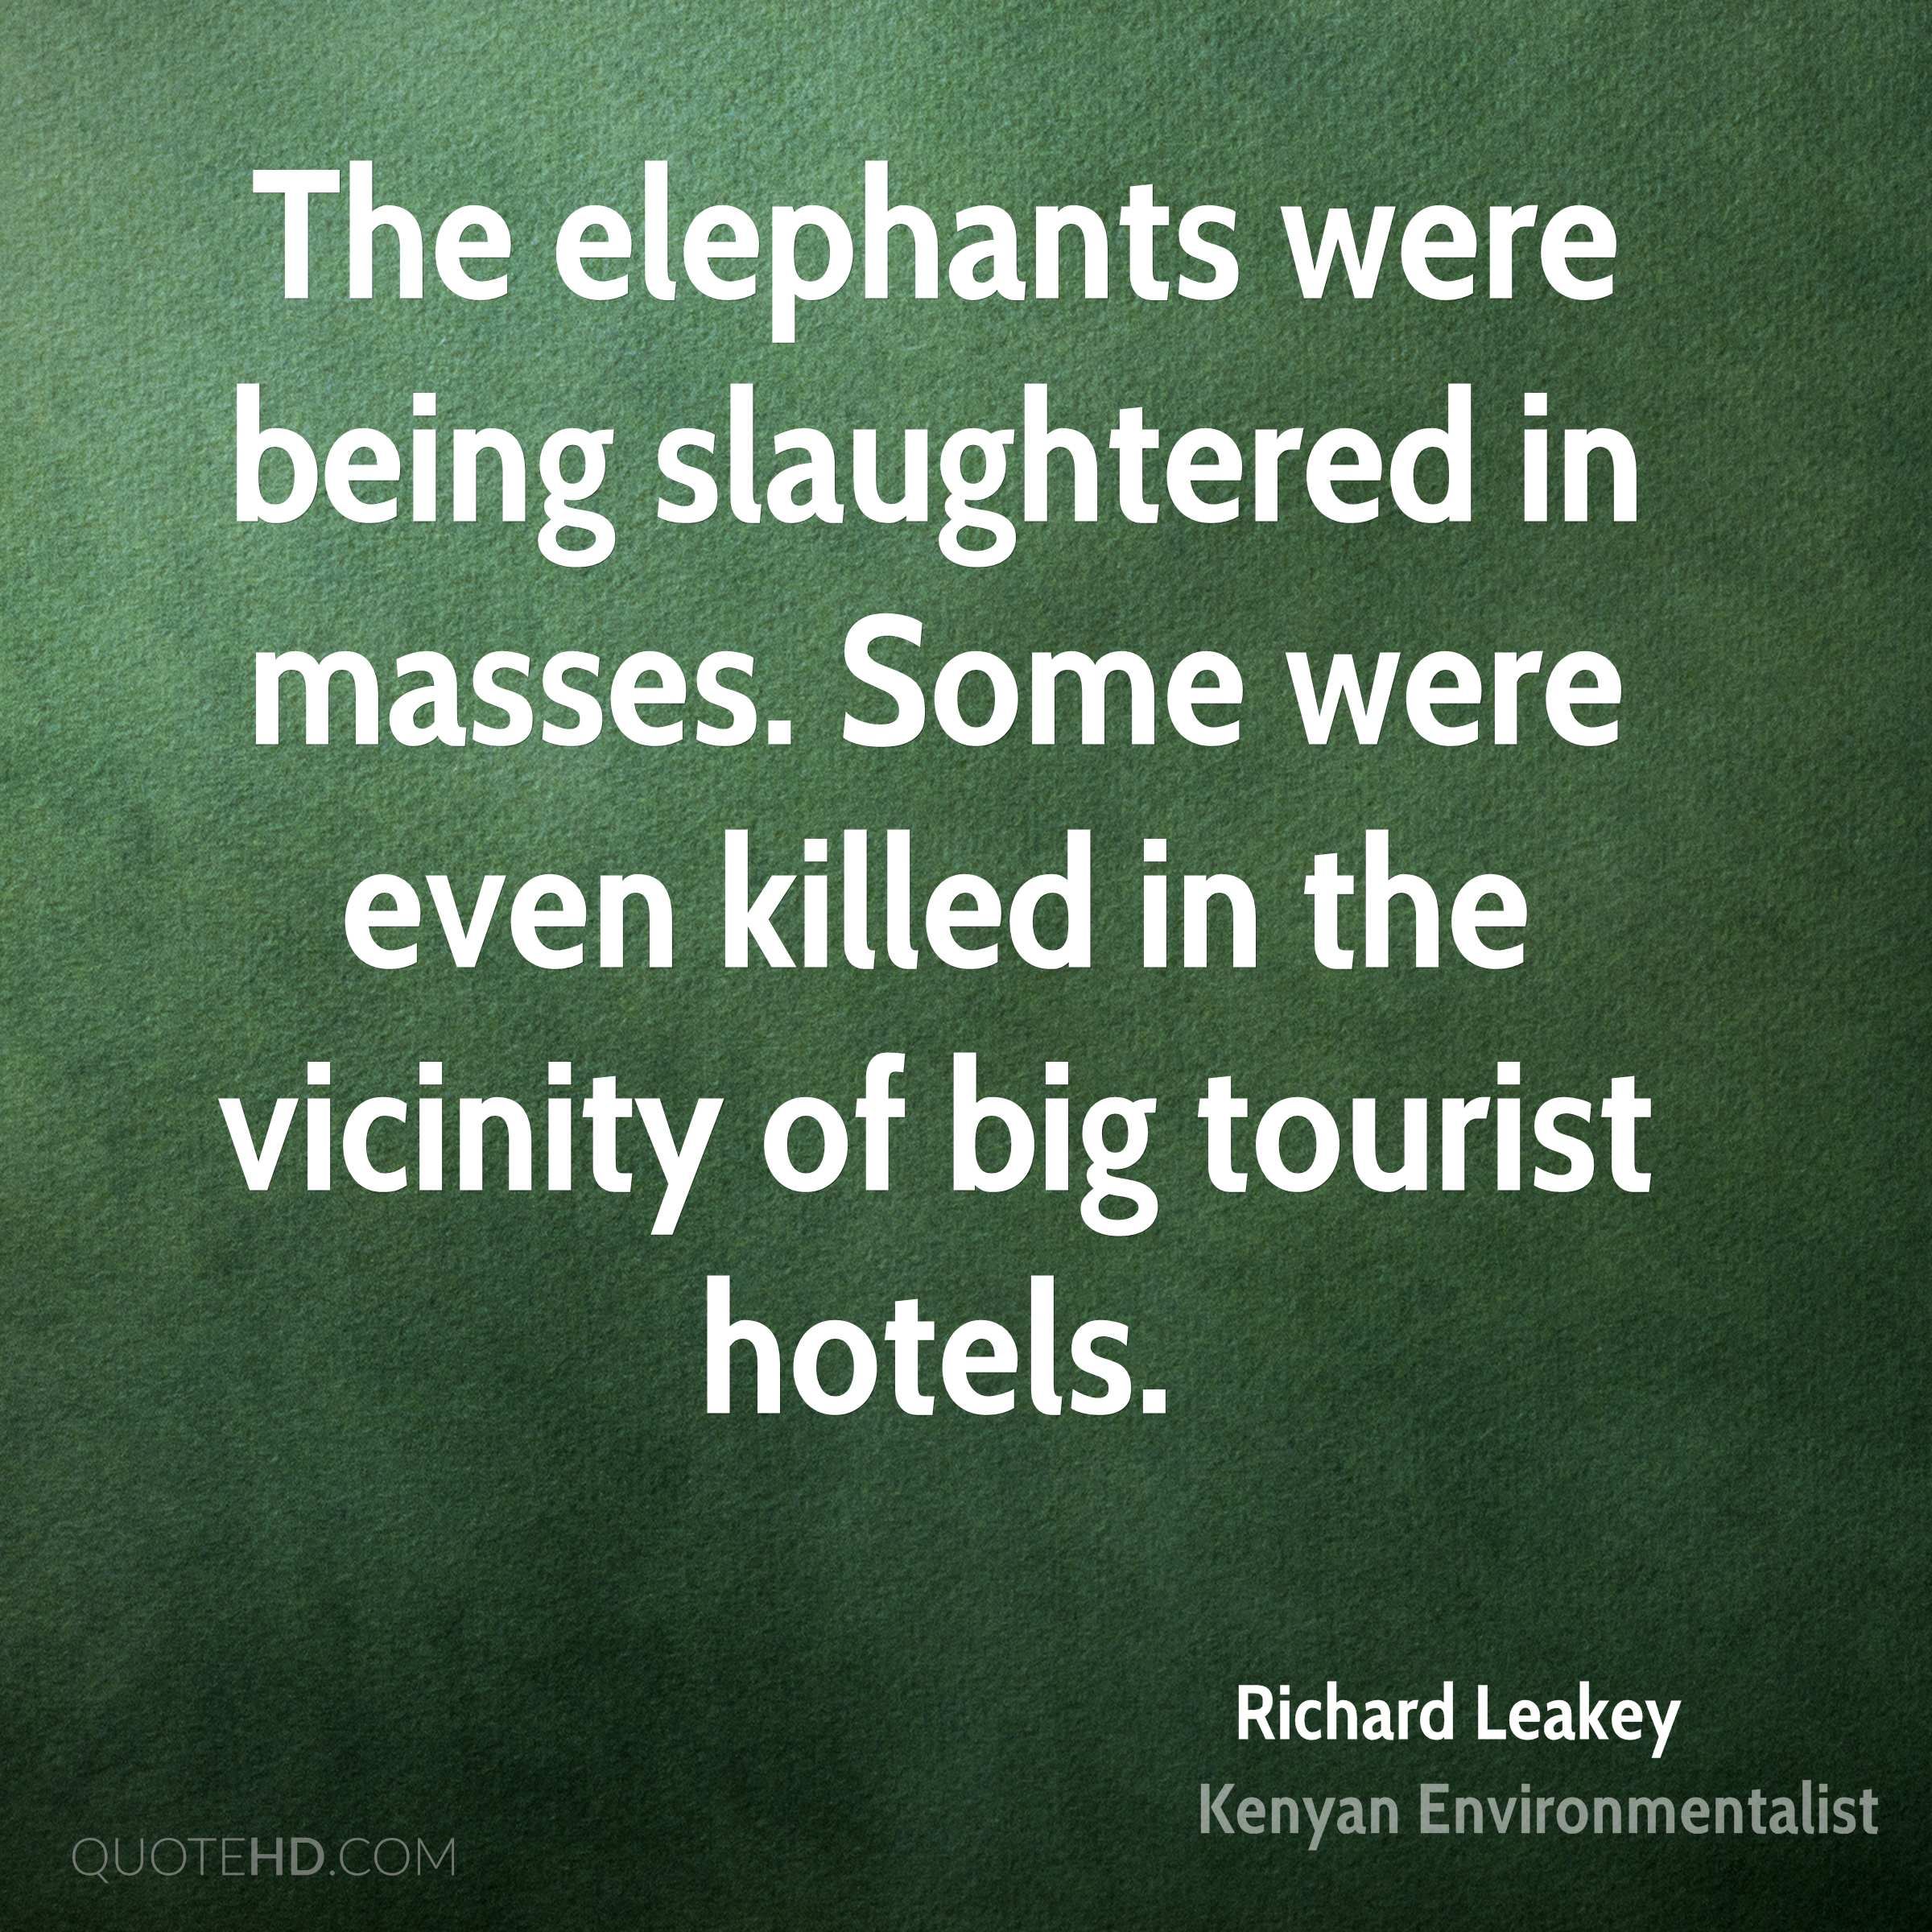 The elephants were being slaughtered in masses. Some were even killed in the vicinity of big tourist hotels.